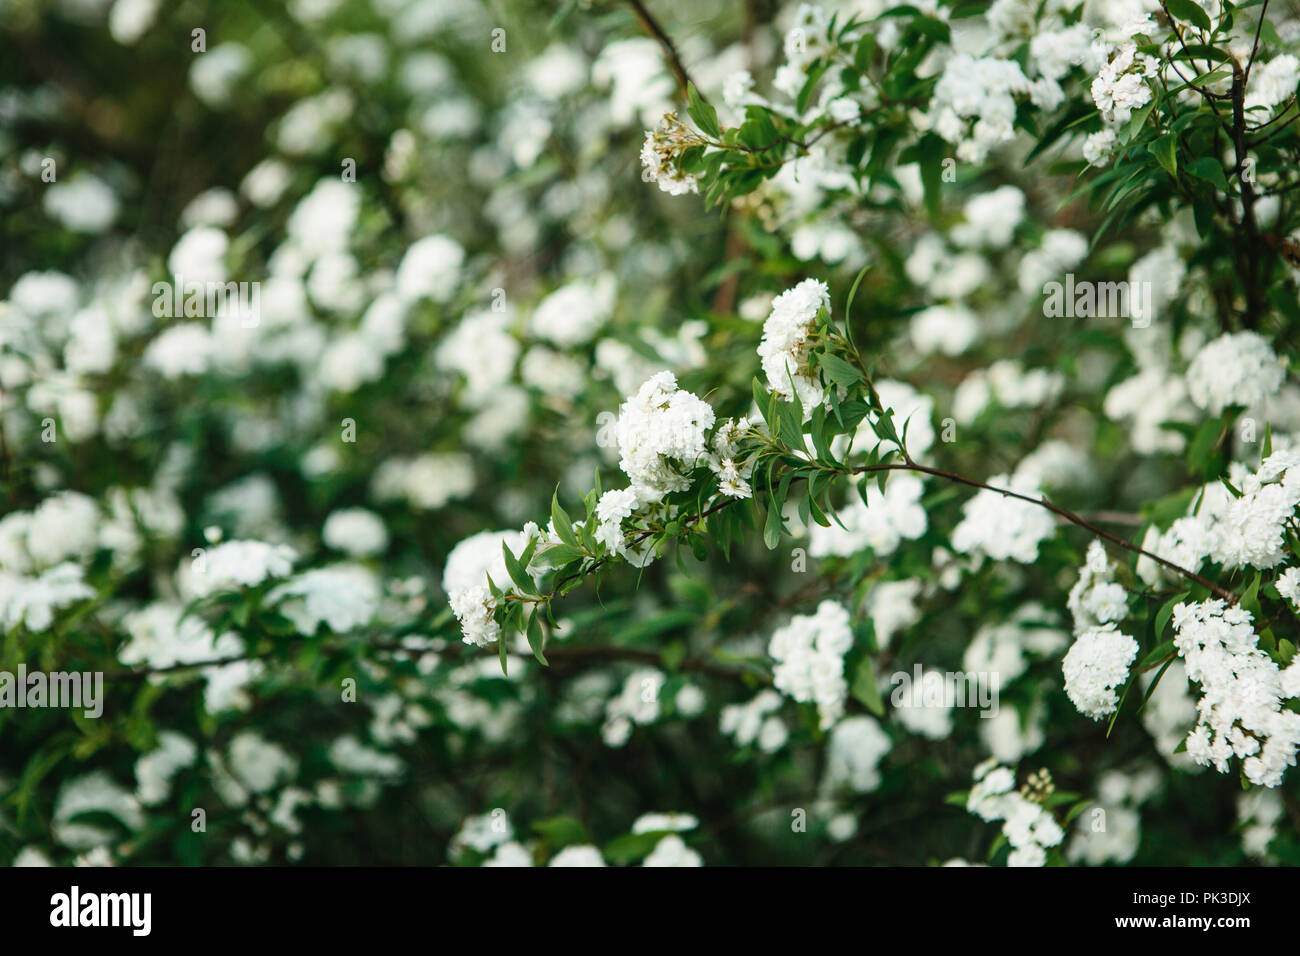 Close Up Blossoming Tree In Spring Branches With White Flowers